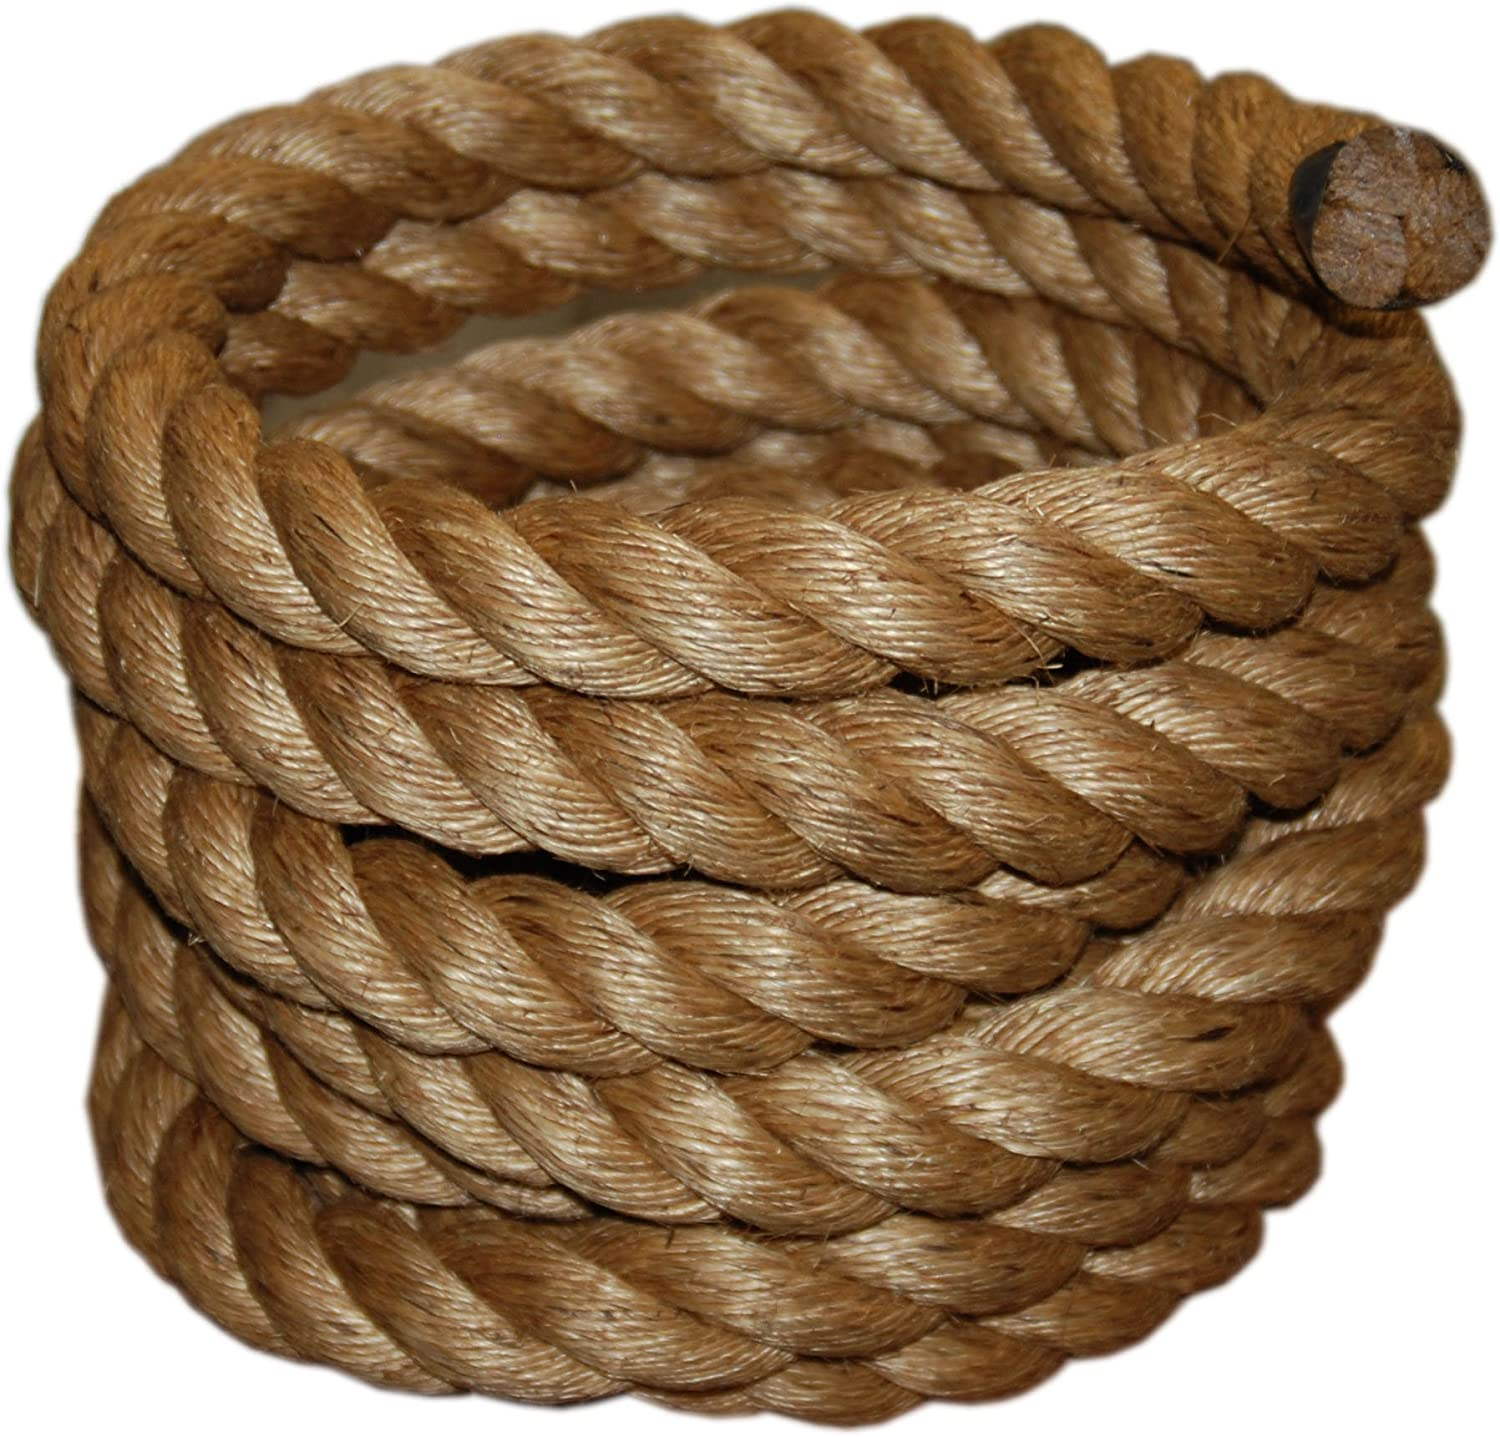 T.W Evans Cordage 30-097-50 1-1/2-Inch by 50-Feet Pure Number-1 Manila Rope